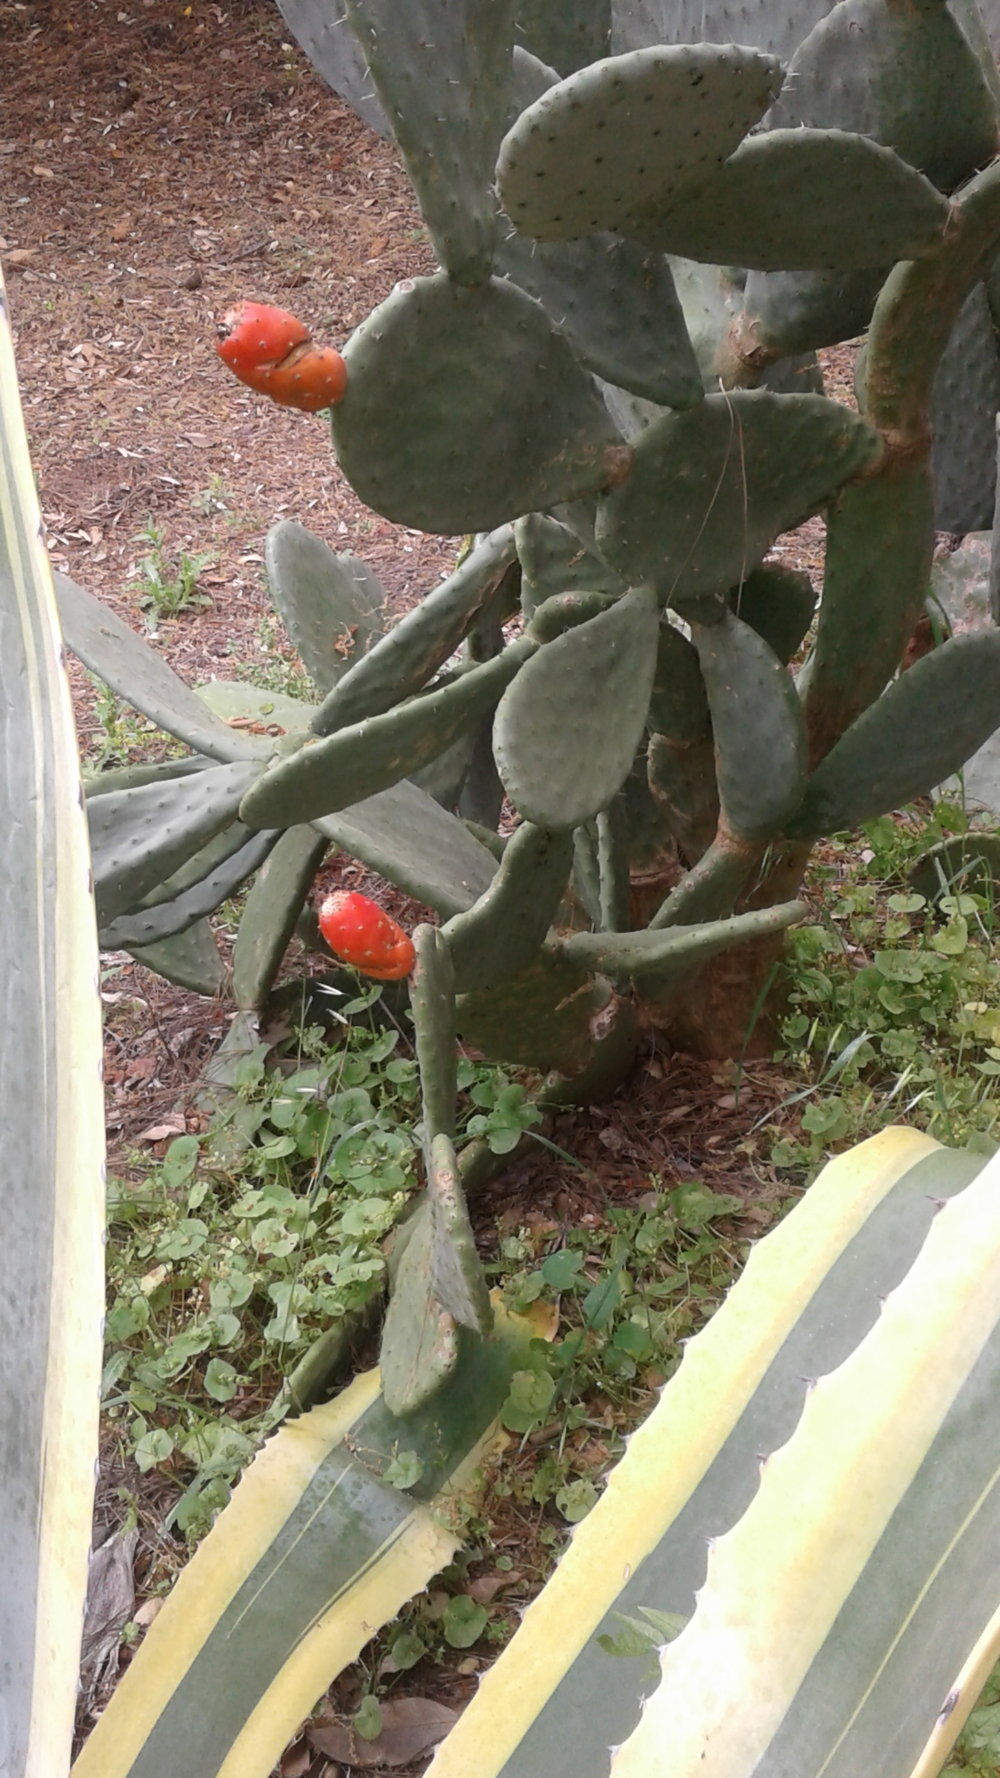 Cactus with red fruit 2.jpg 2.jpg